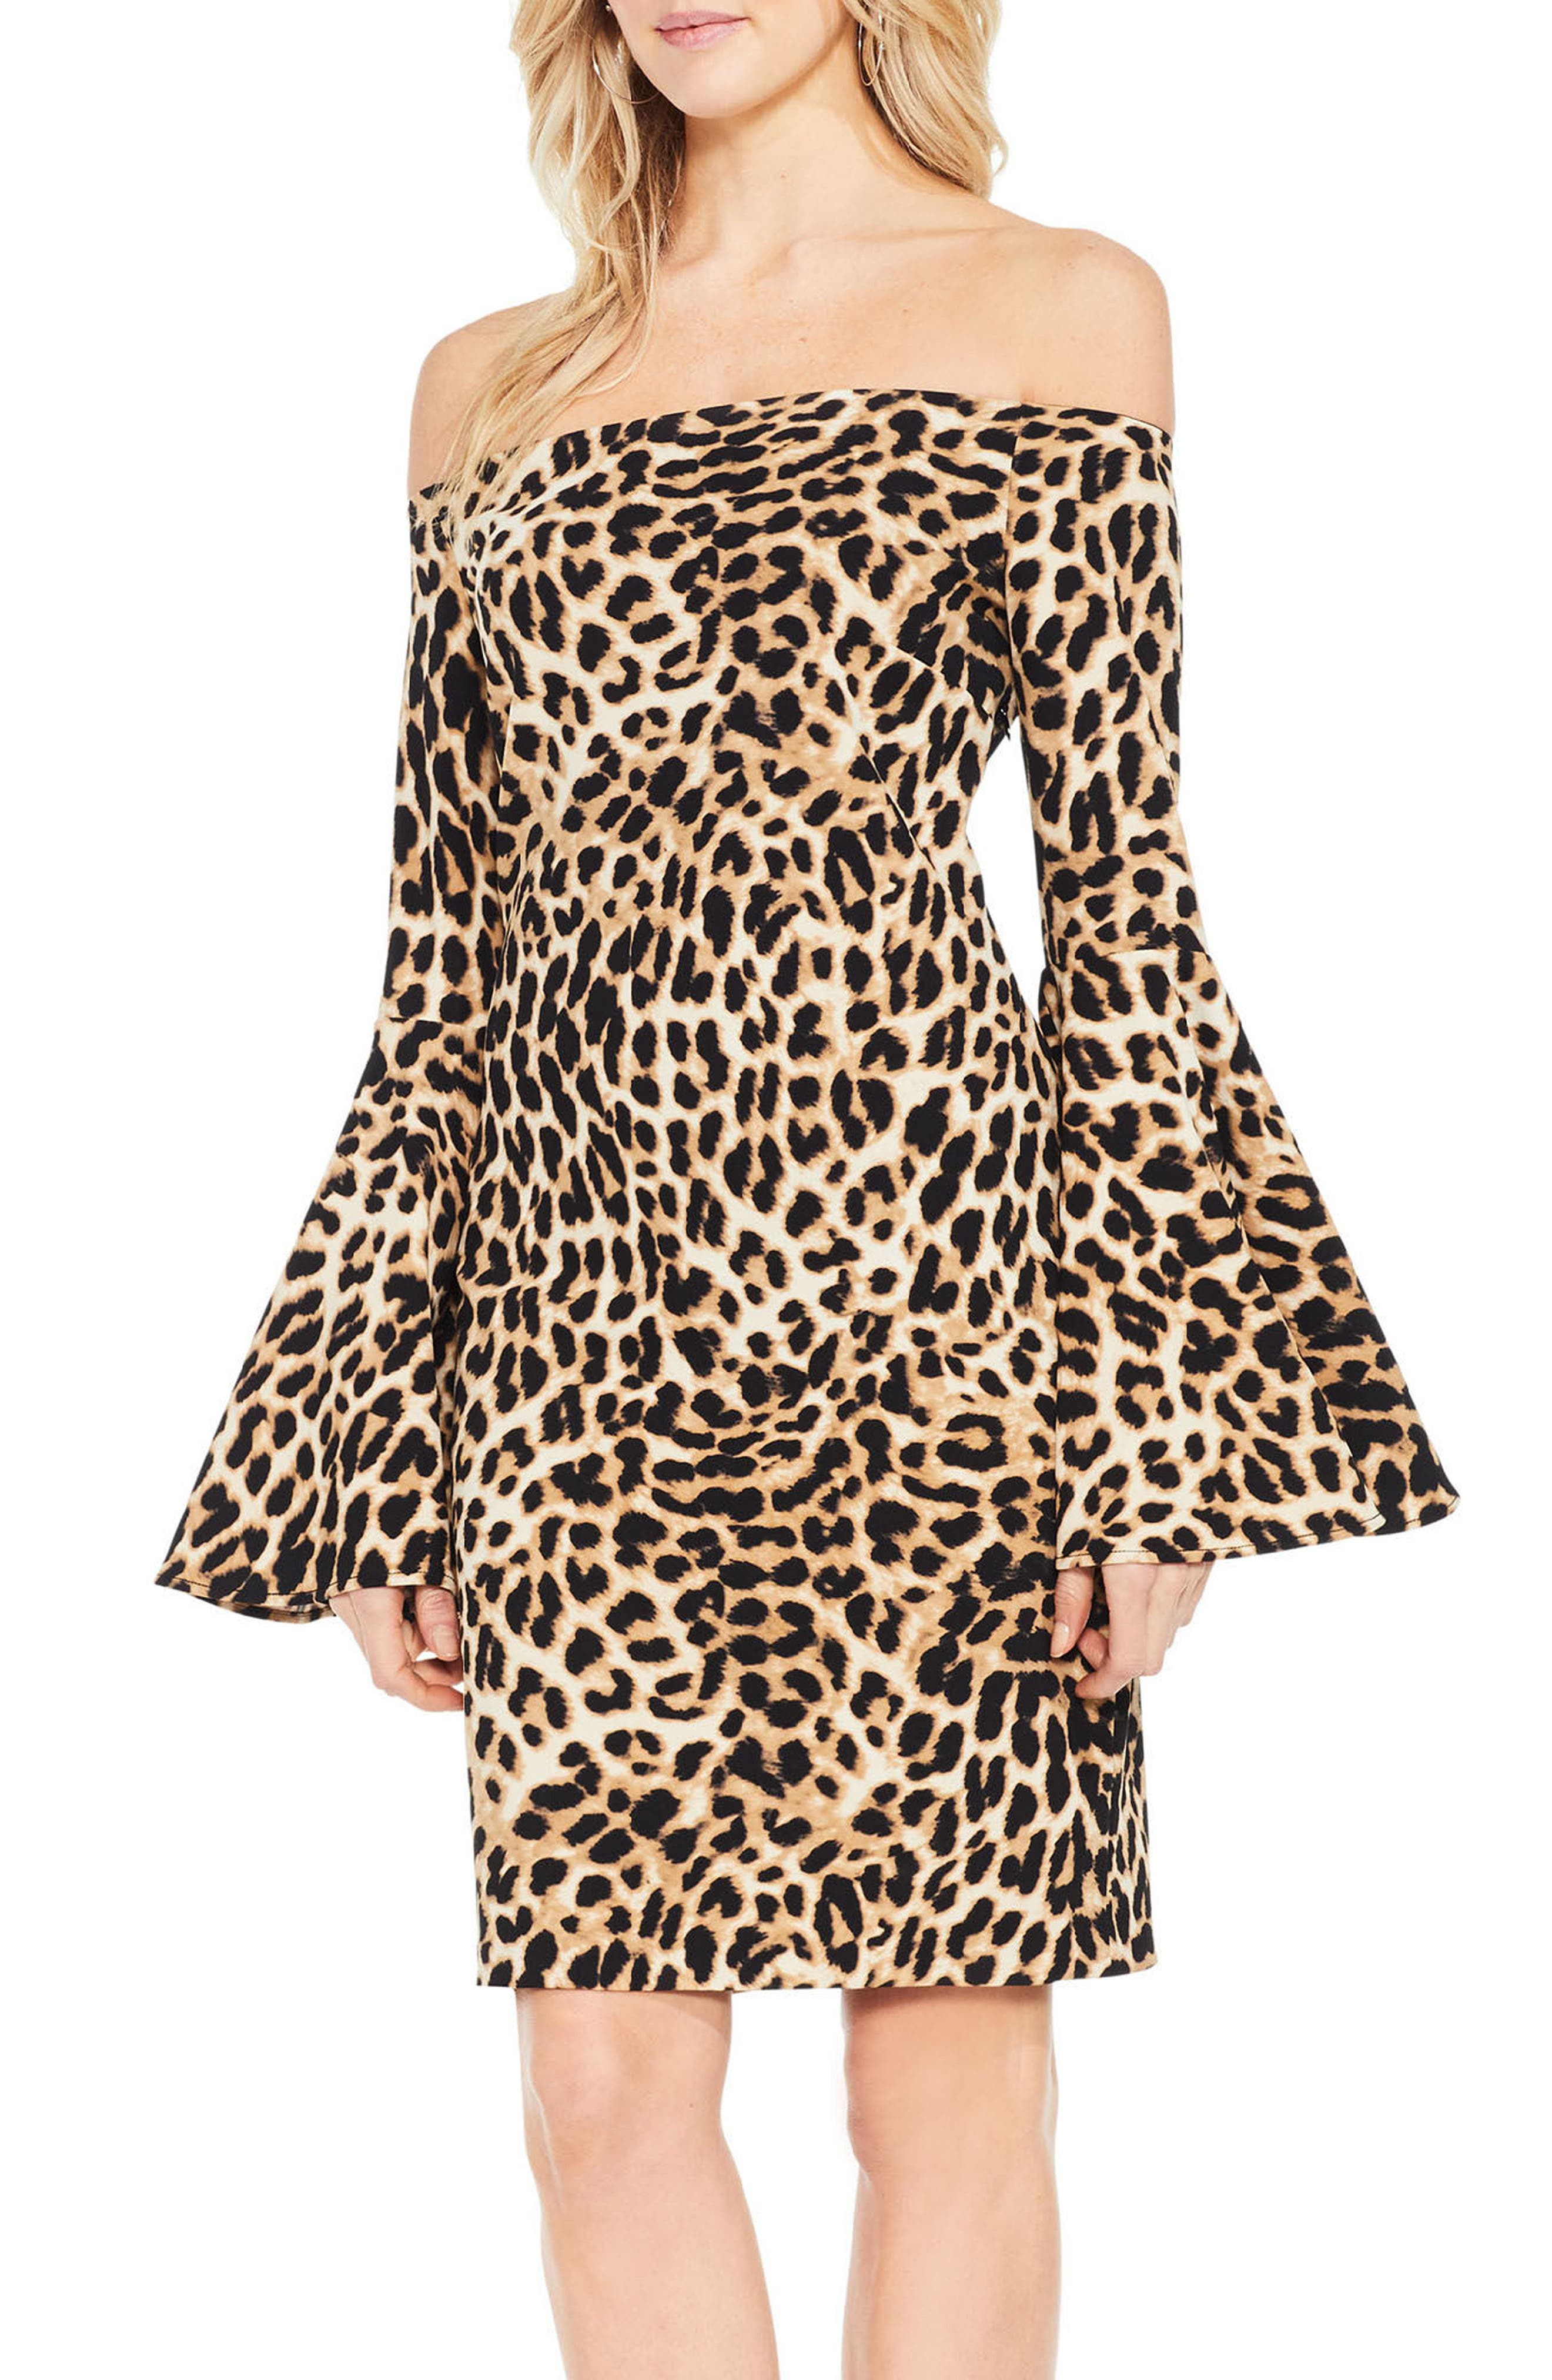 Alternate Image 1 Selected - Vince Camuto Animal Print Off the Shoulder Dress